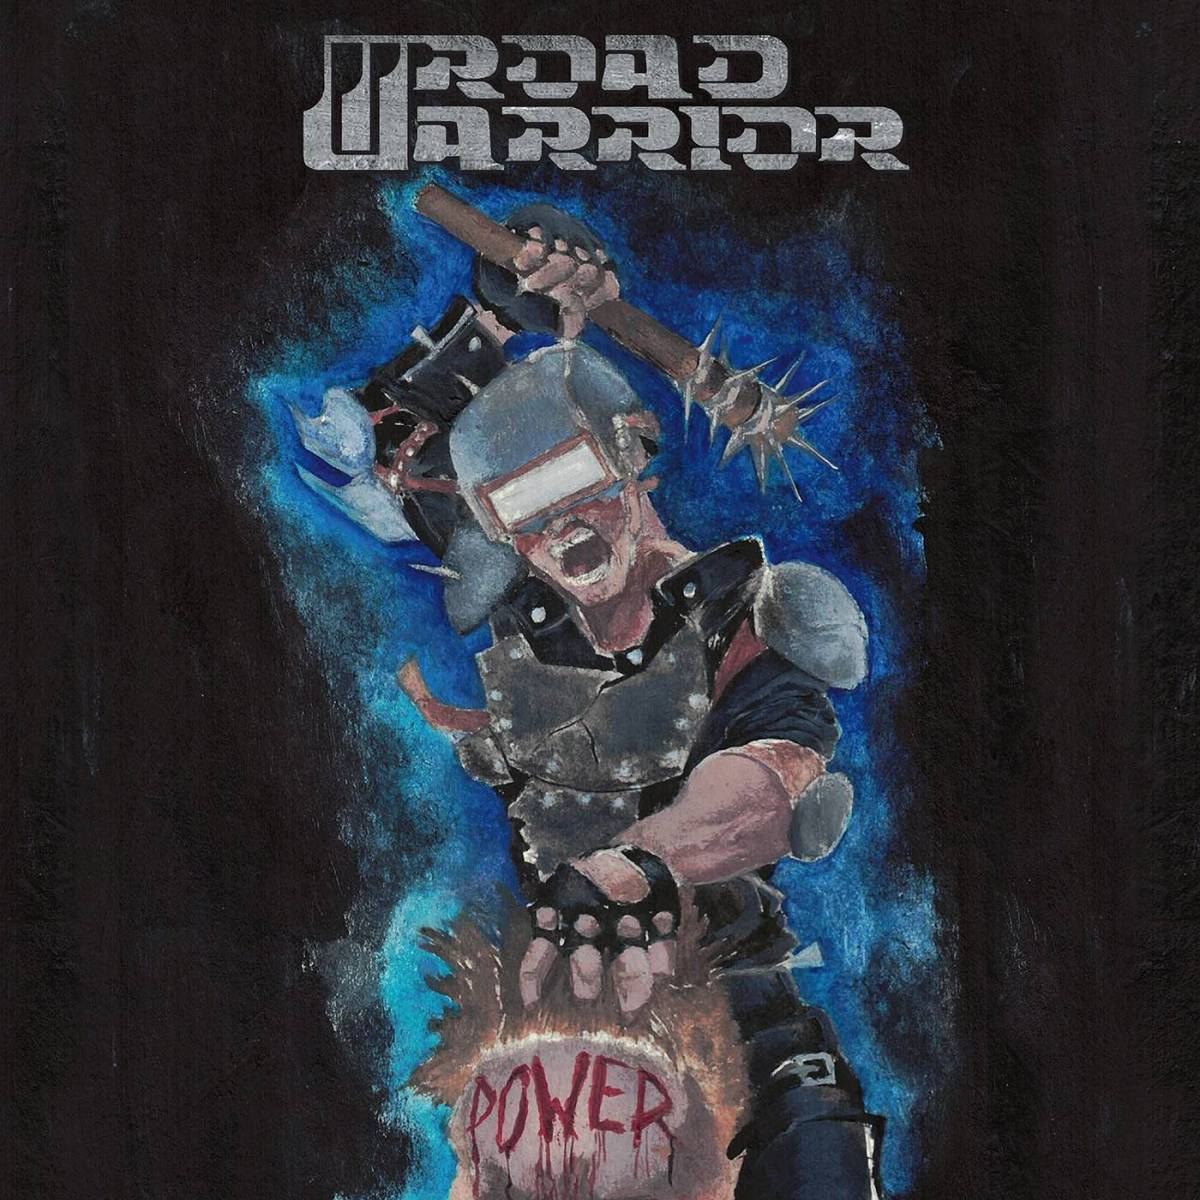 Road Warrior - Power